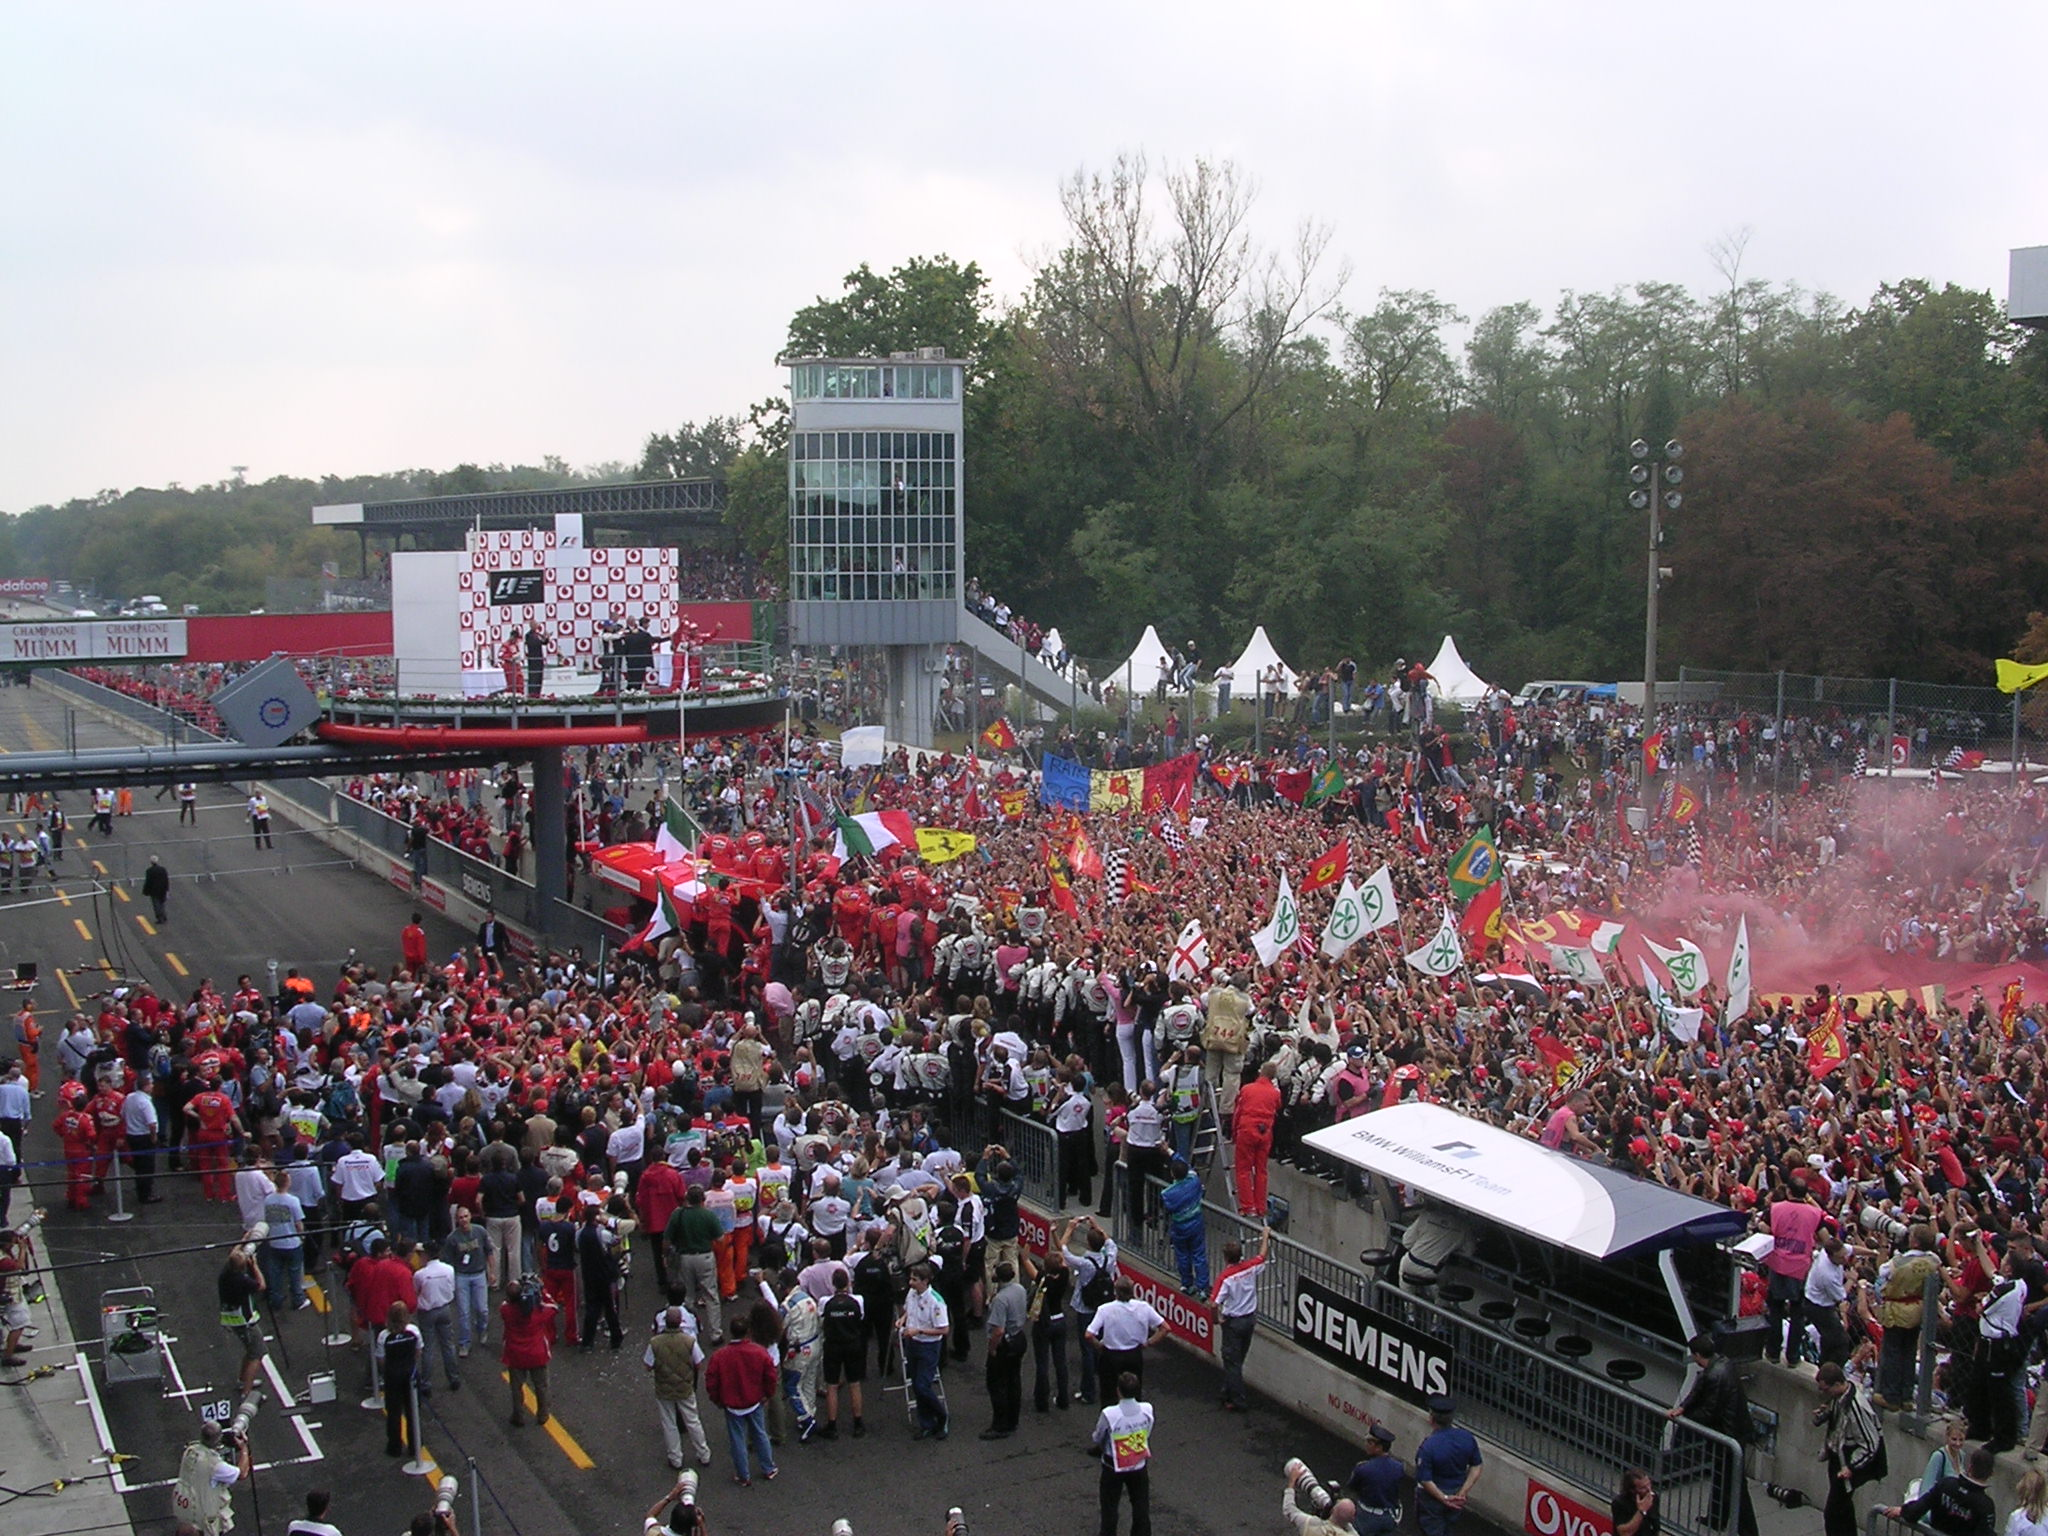 k 1 world gp 1999 monza - photo#19